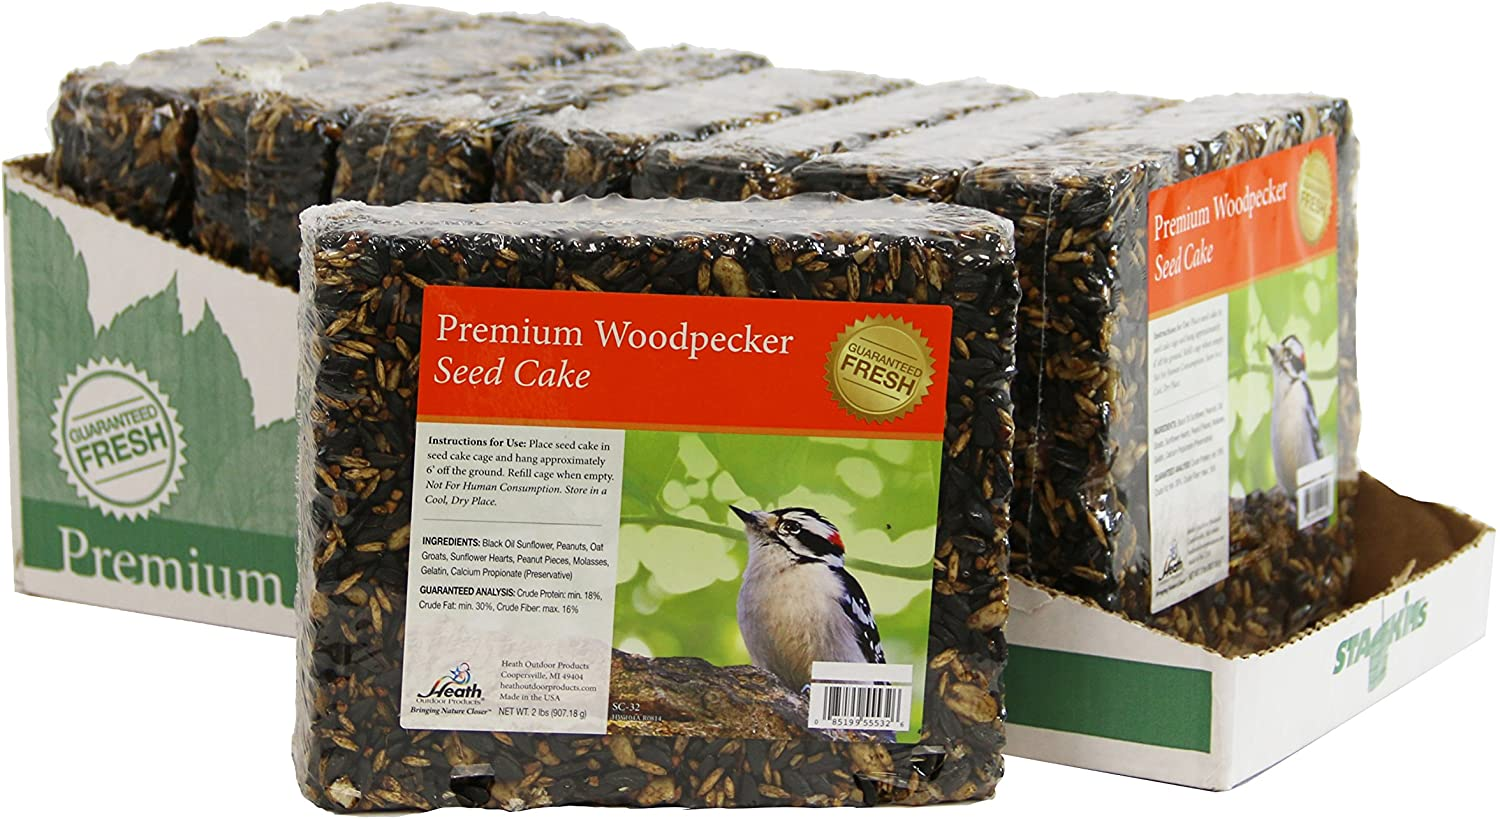 Heath Outdoor Products SC-32-8 Premium Woodpecker 2-Pound Seed Cake, Case of 8